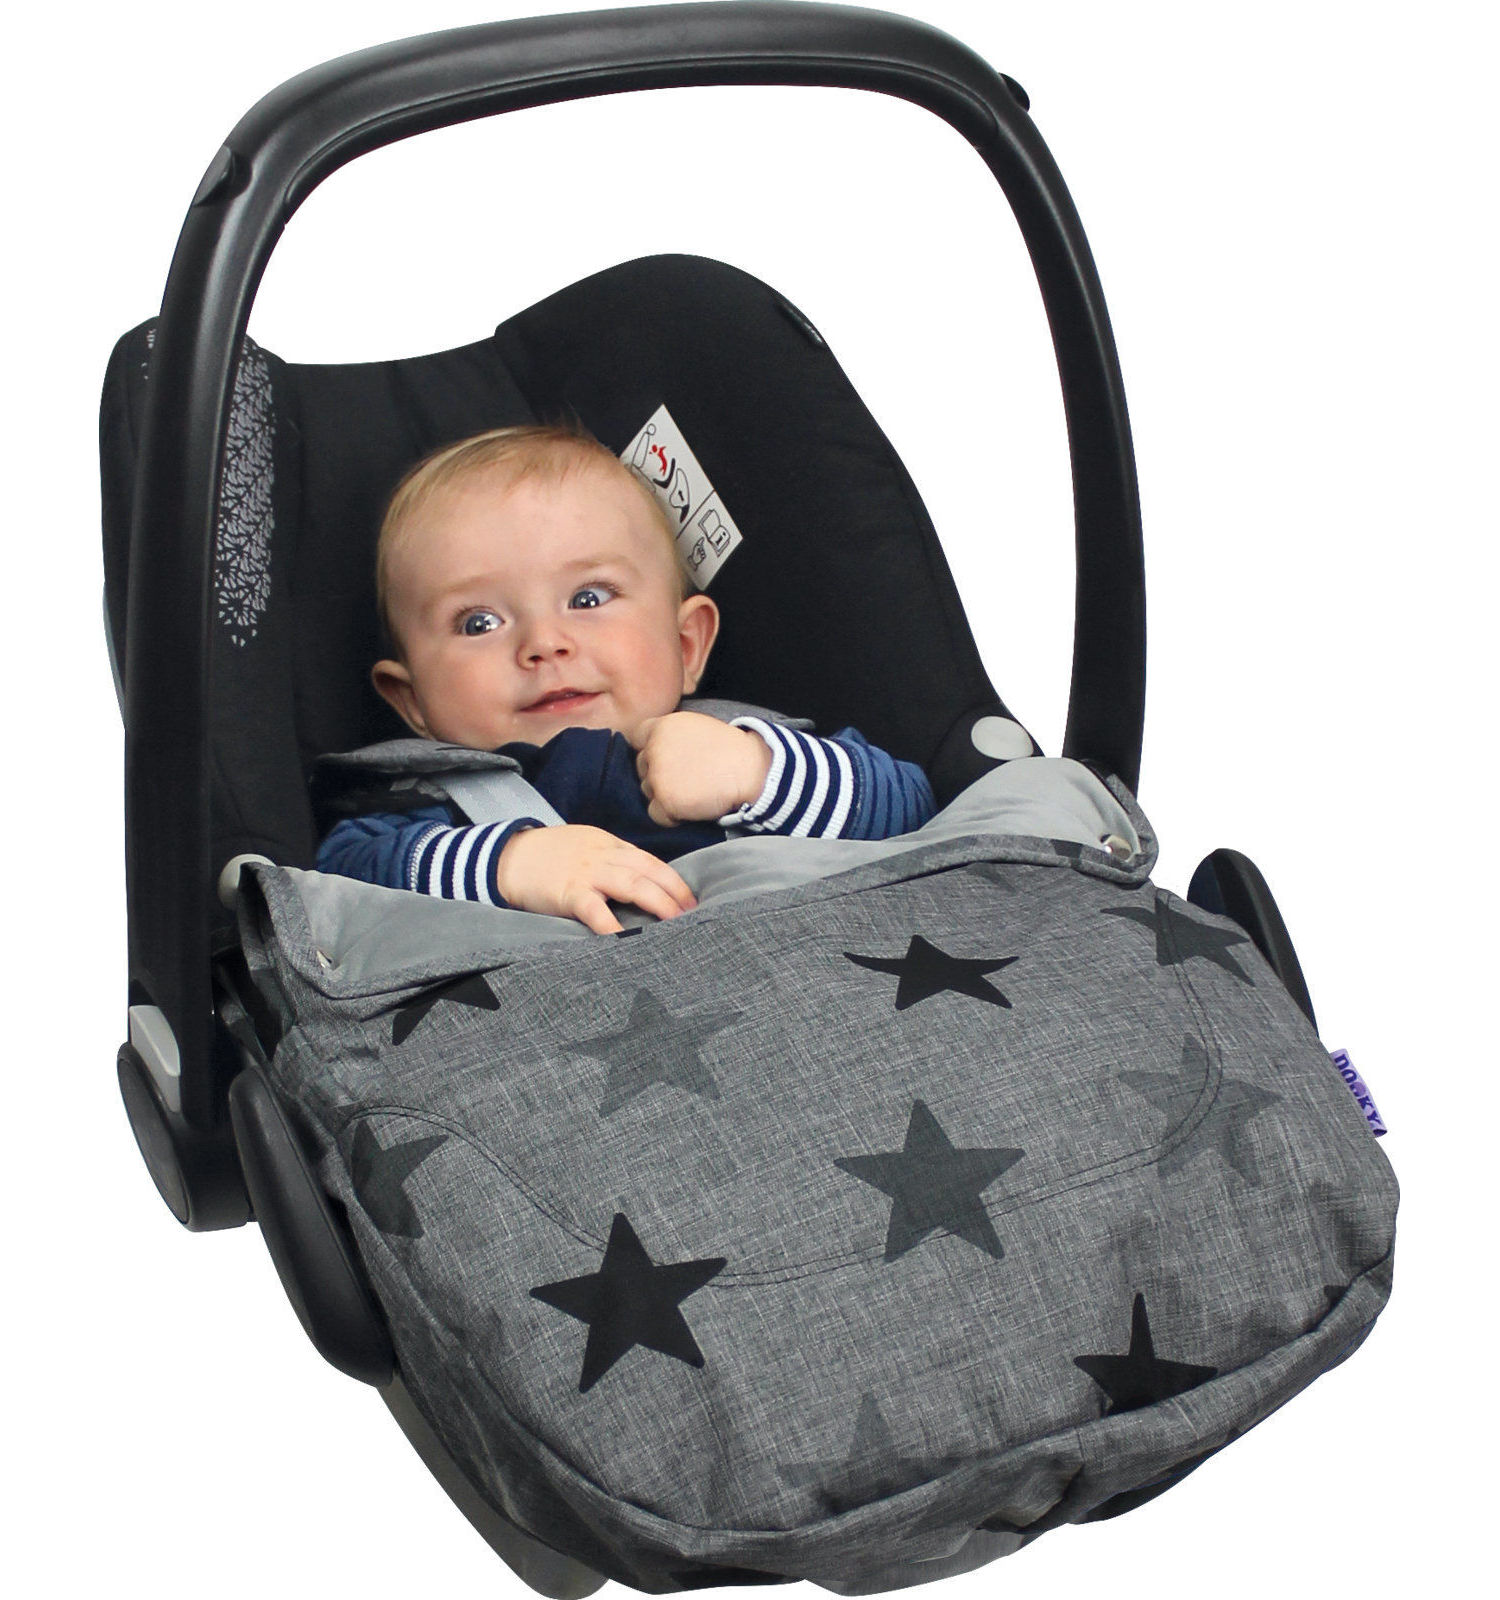 Dooky Cosy Top universal fleeced lined Cosytoe car seat cover - Choose your design - Grey Stars